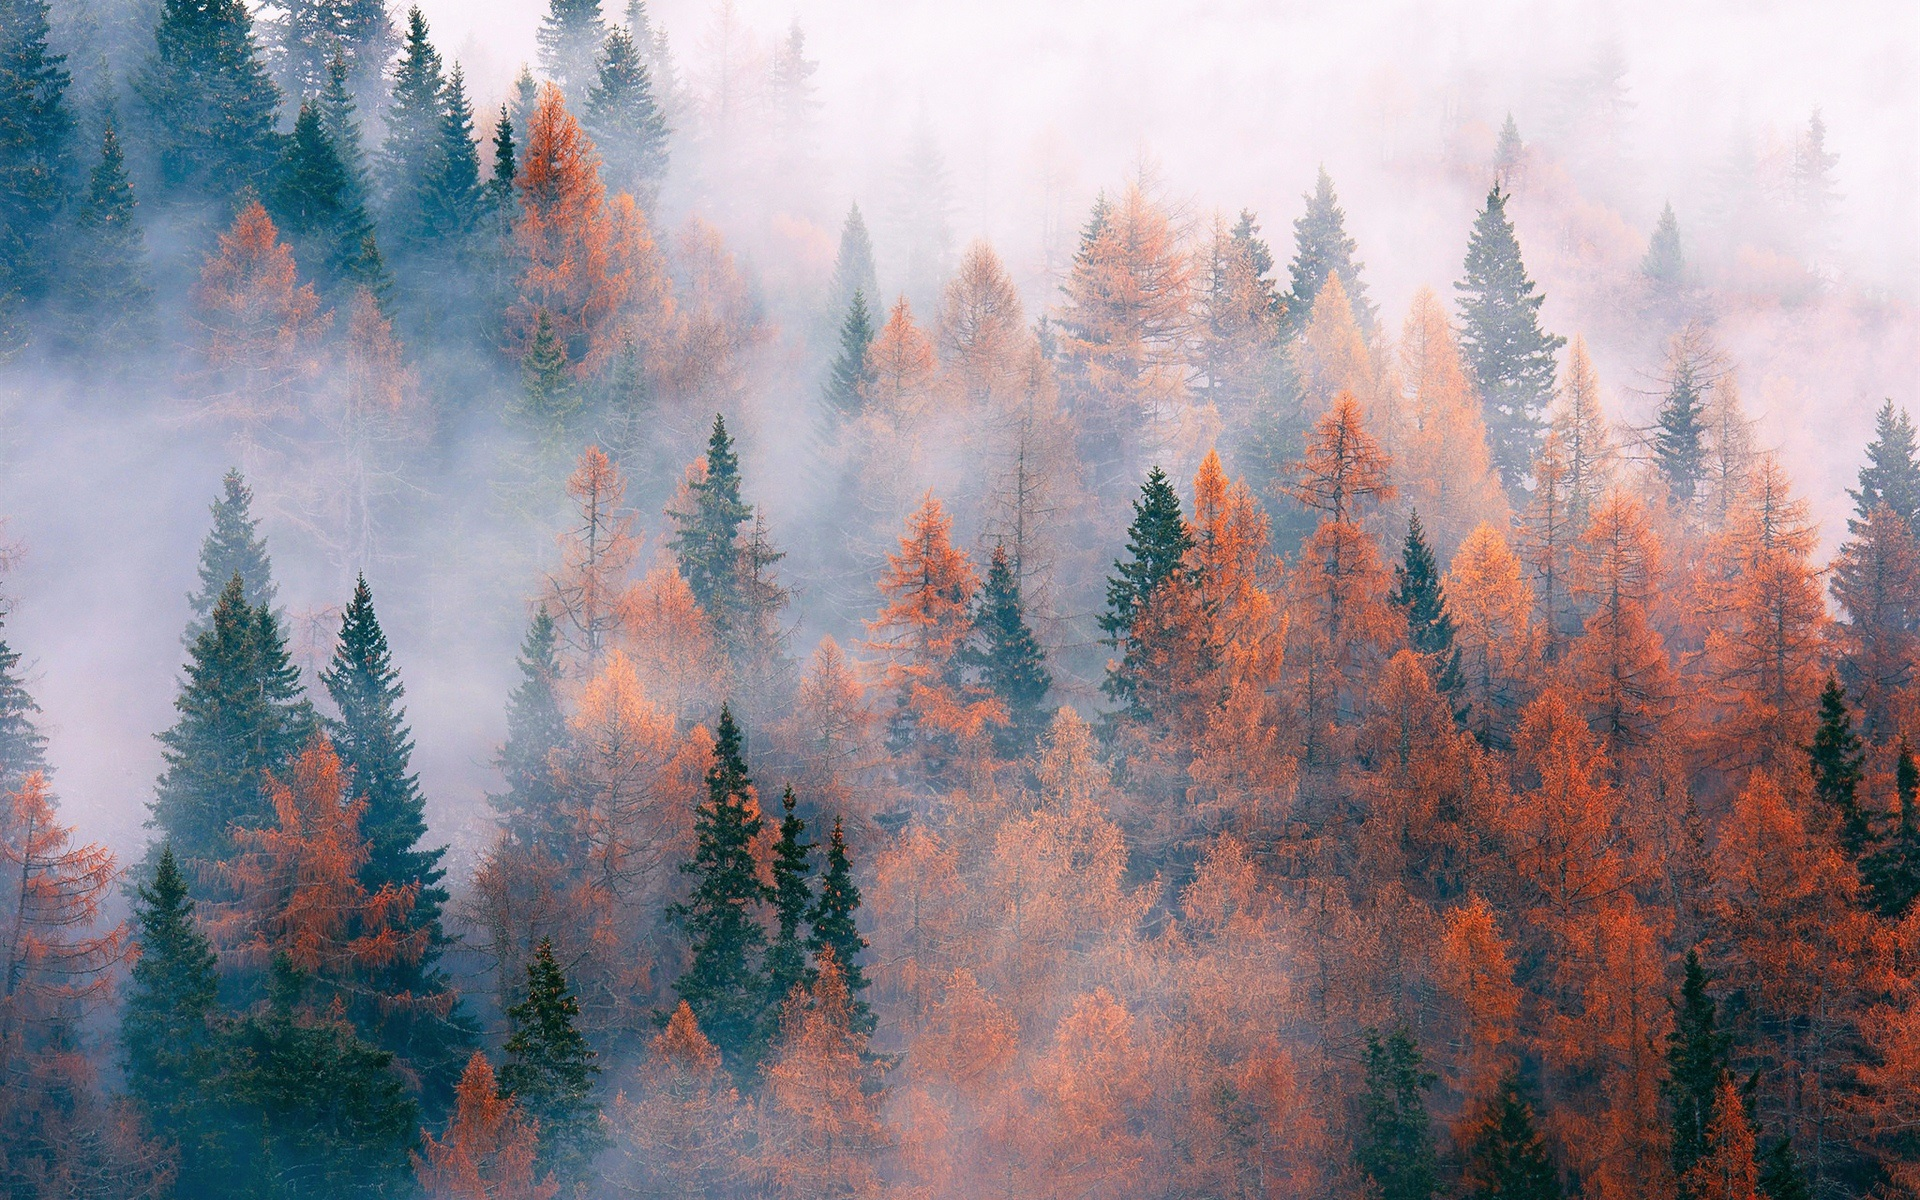 Fall Leaf Wallpaper For Mobile Forest Trees Fog Autumn Wallpaper Nature And